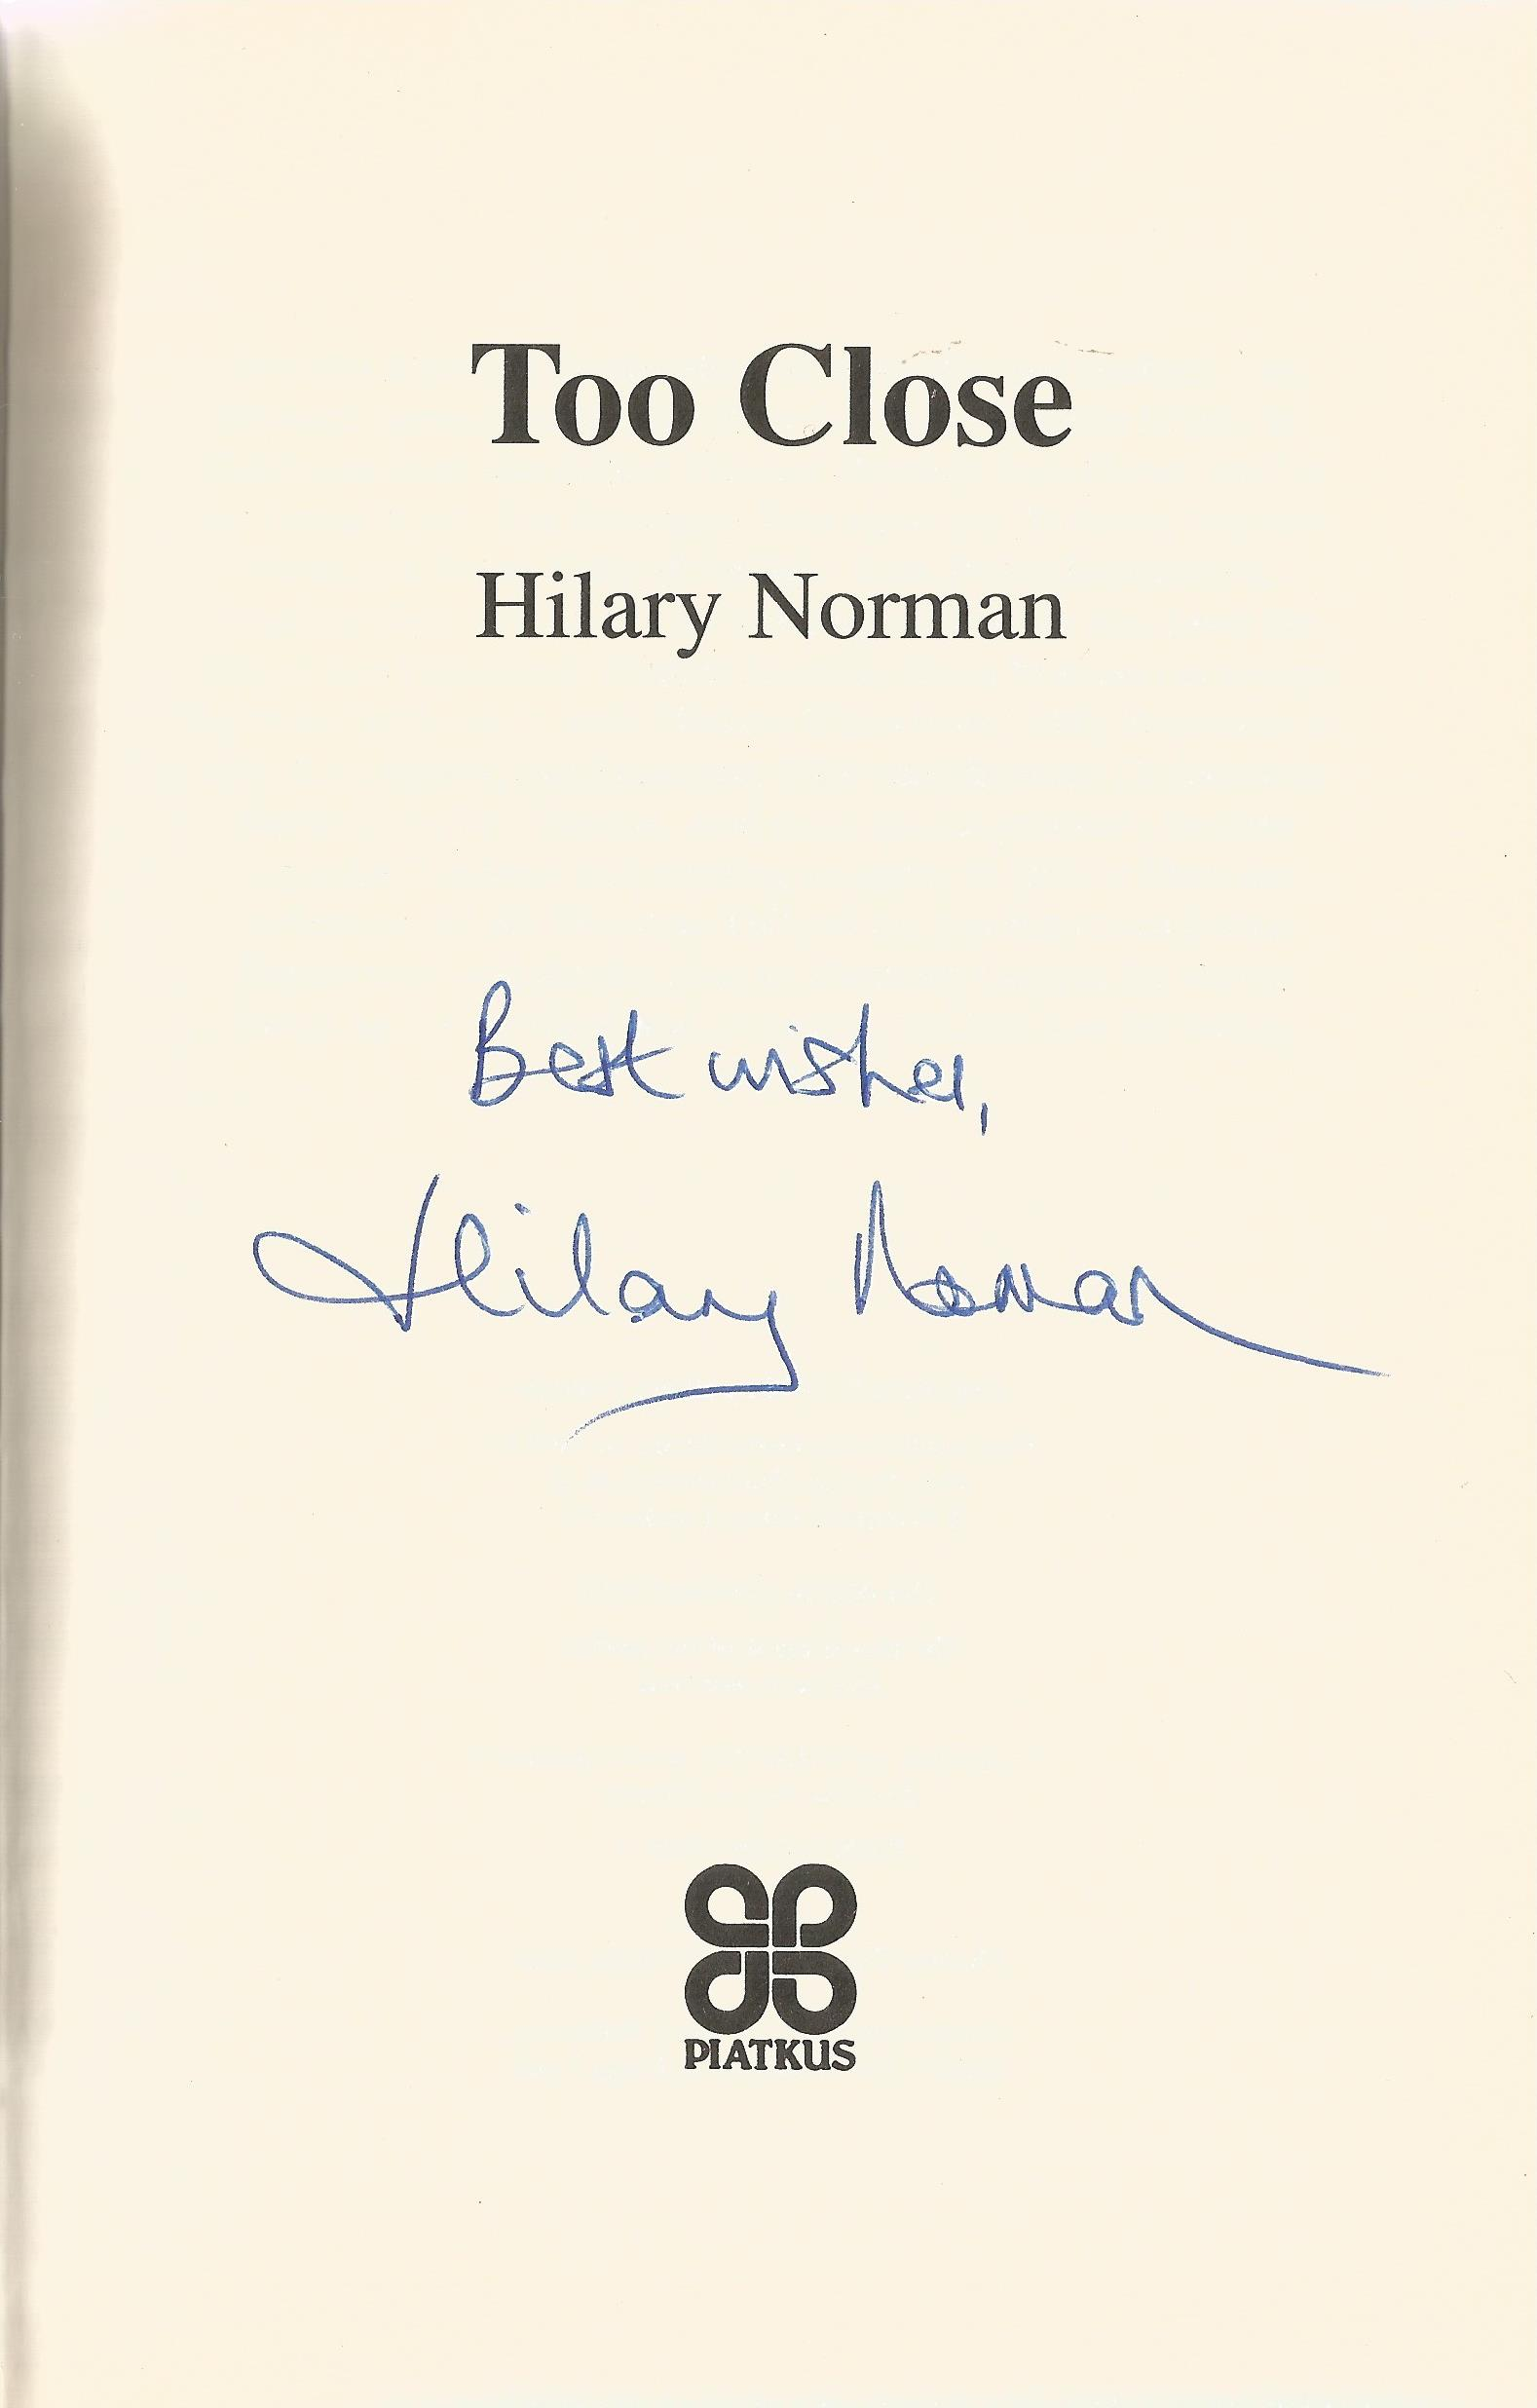 Hilary Norman Hardback Book Too Close signed by the Author on the Title Page First Edition dust - Image 2 of 2